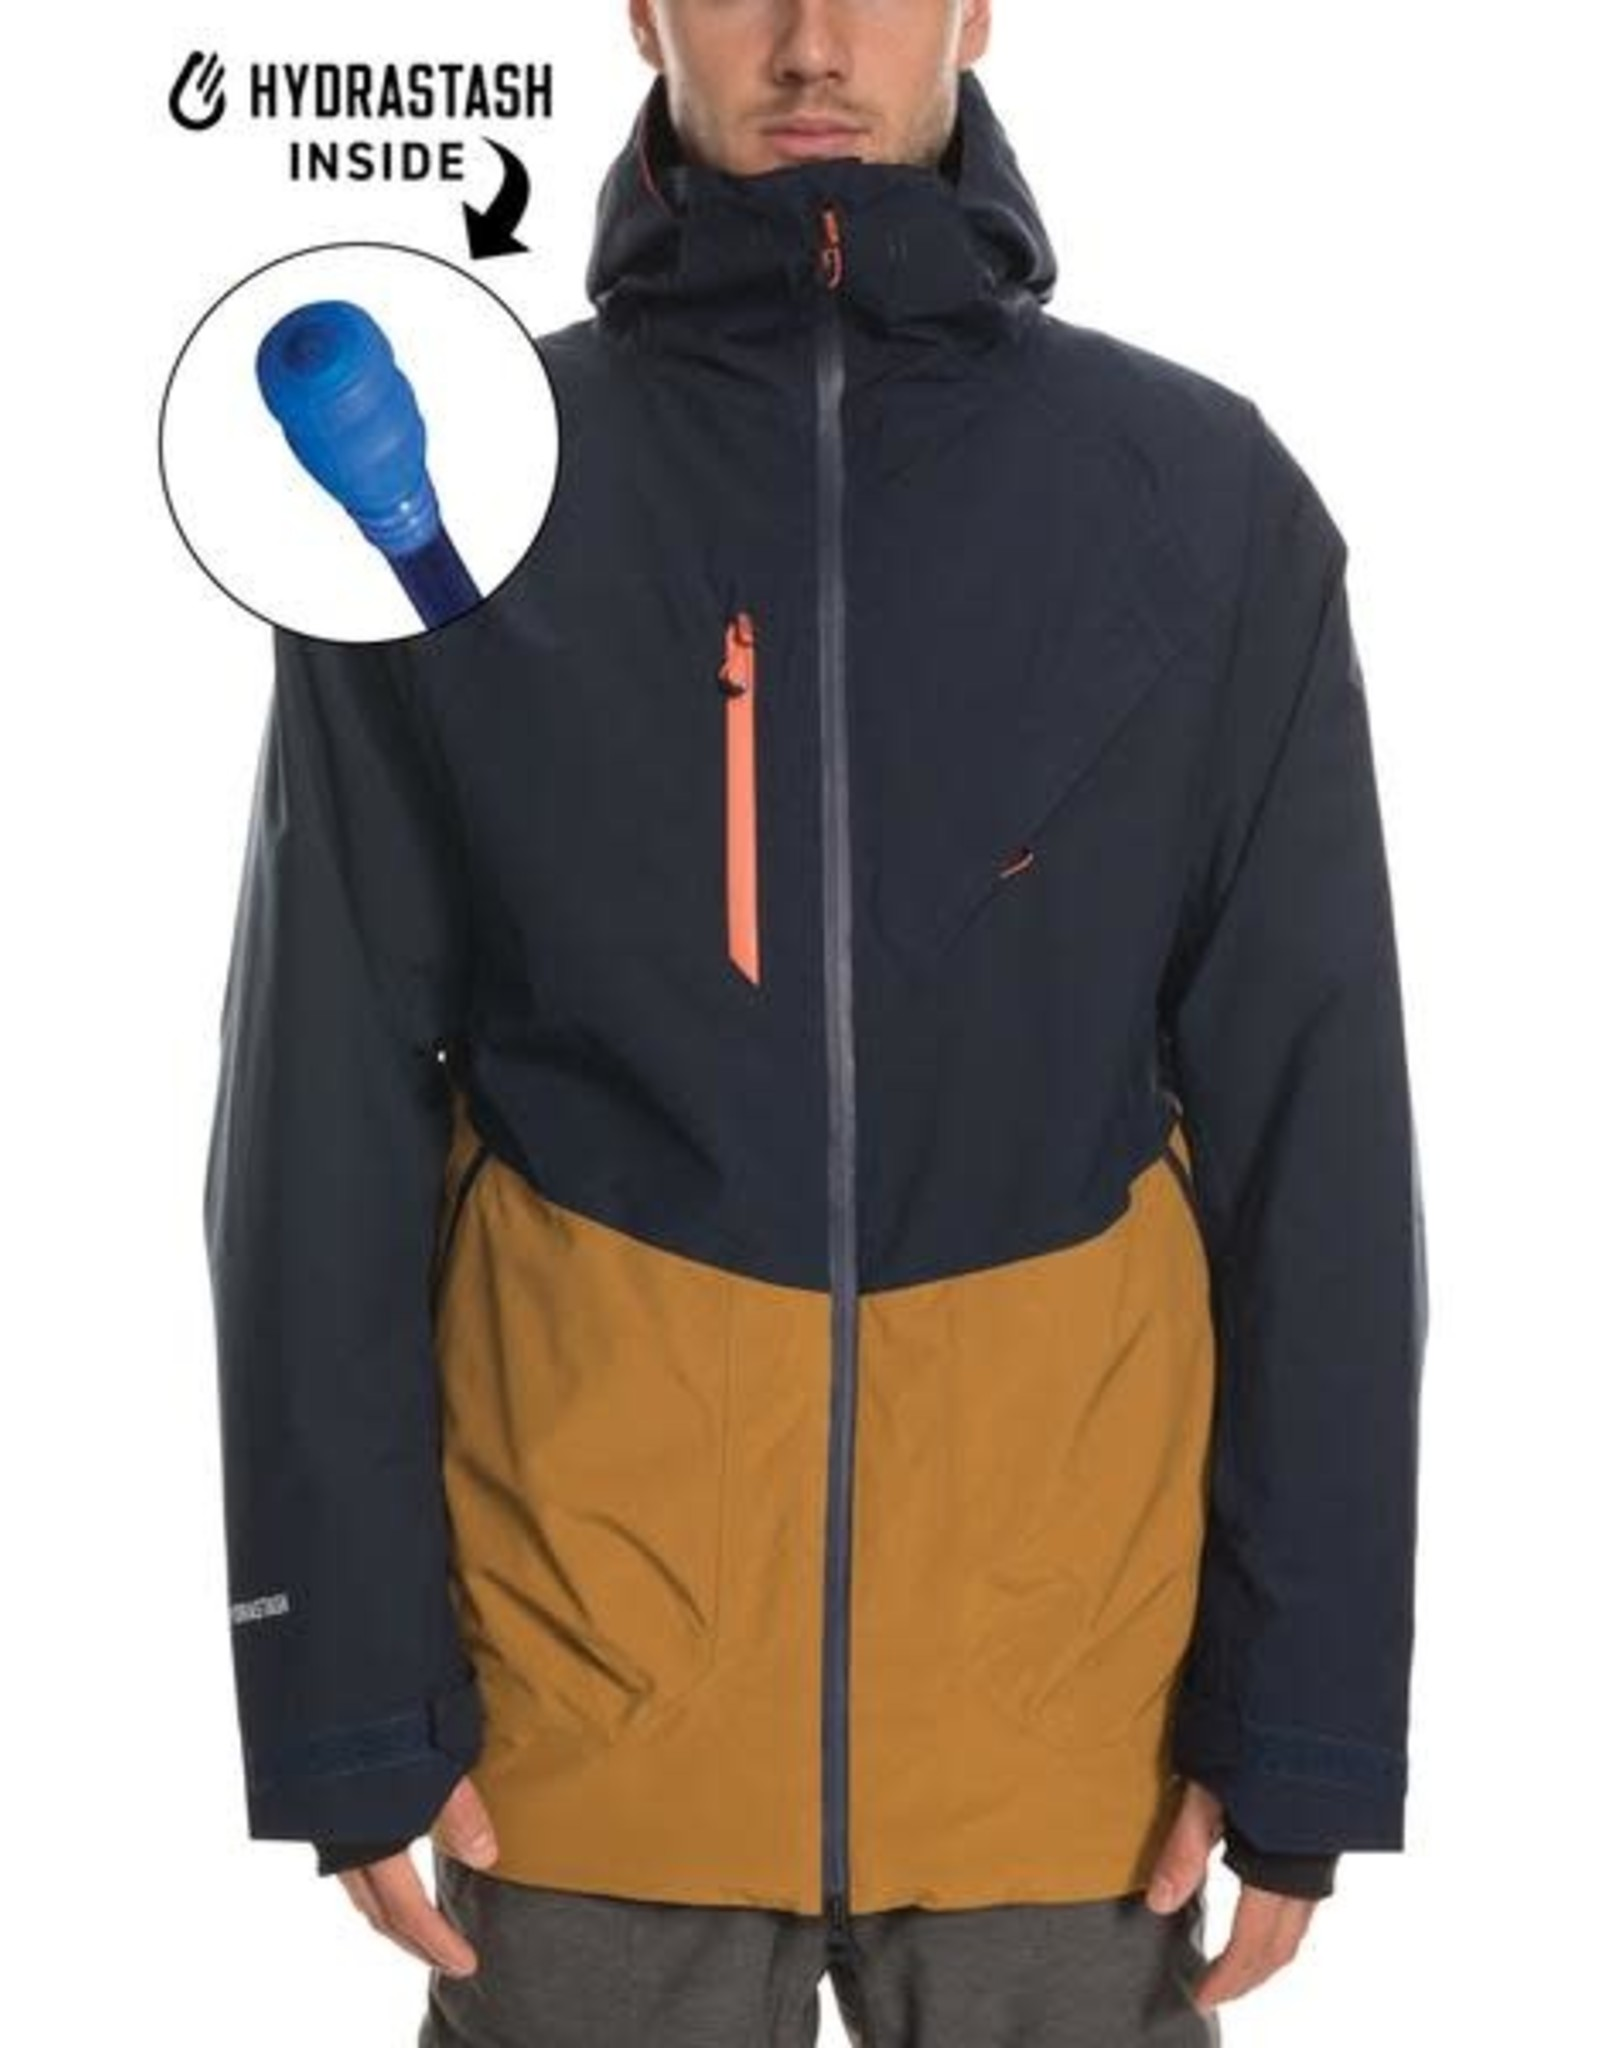 686 686 Men's Hydrastash Reservoir Insulated Jacket